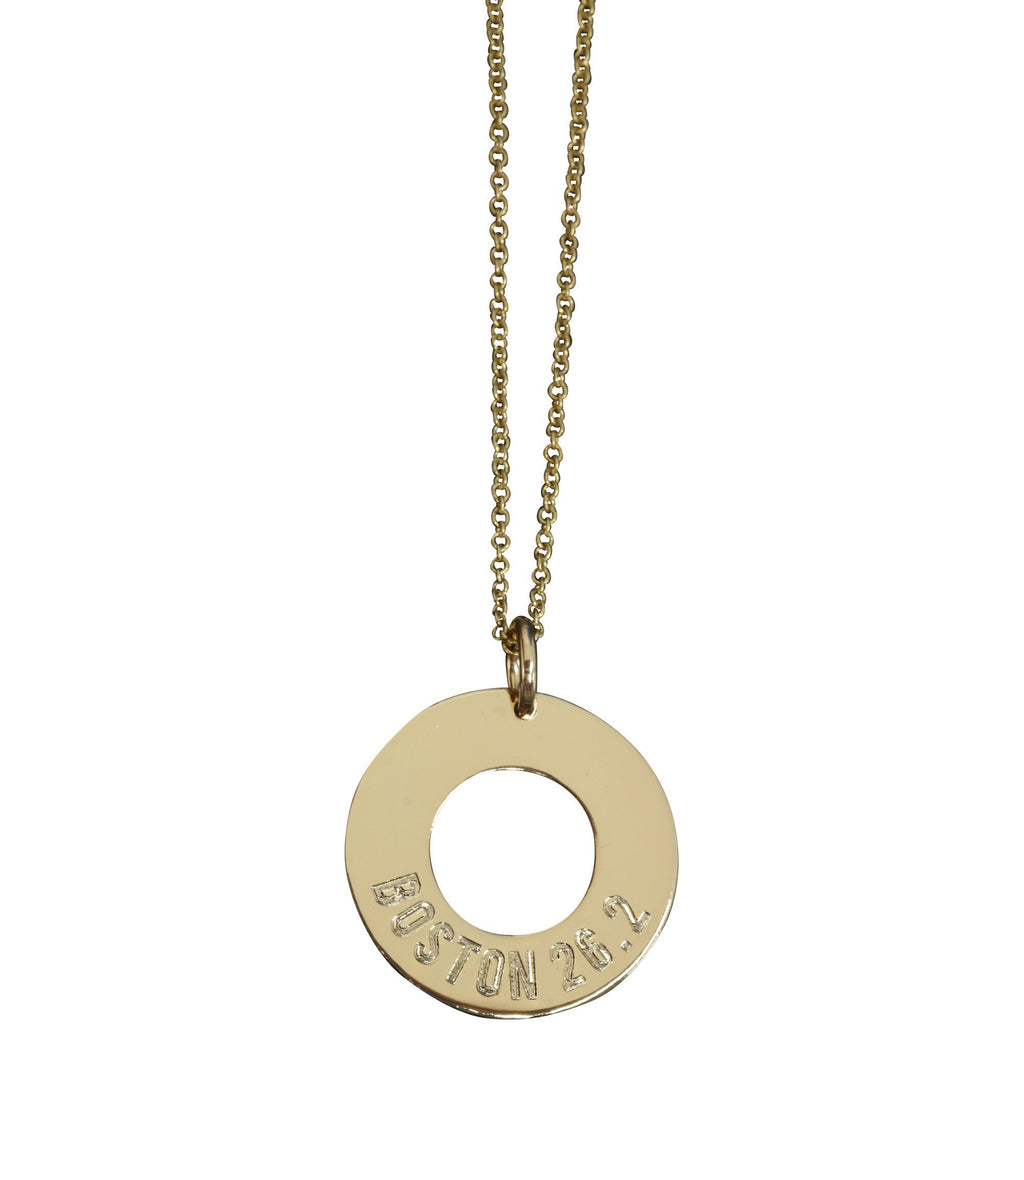 Boston 26.2 Necklace - Sarah Marie Design Studio